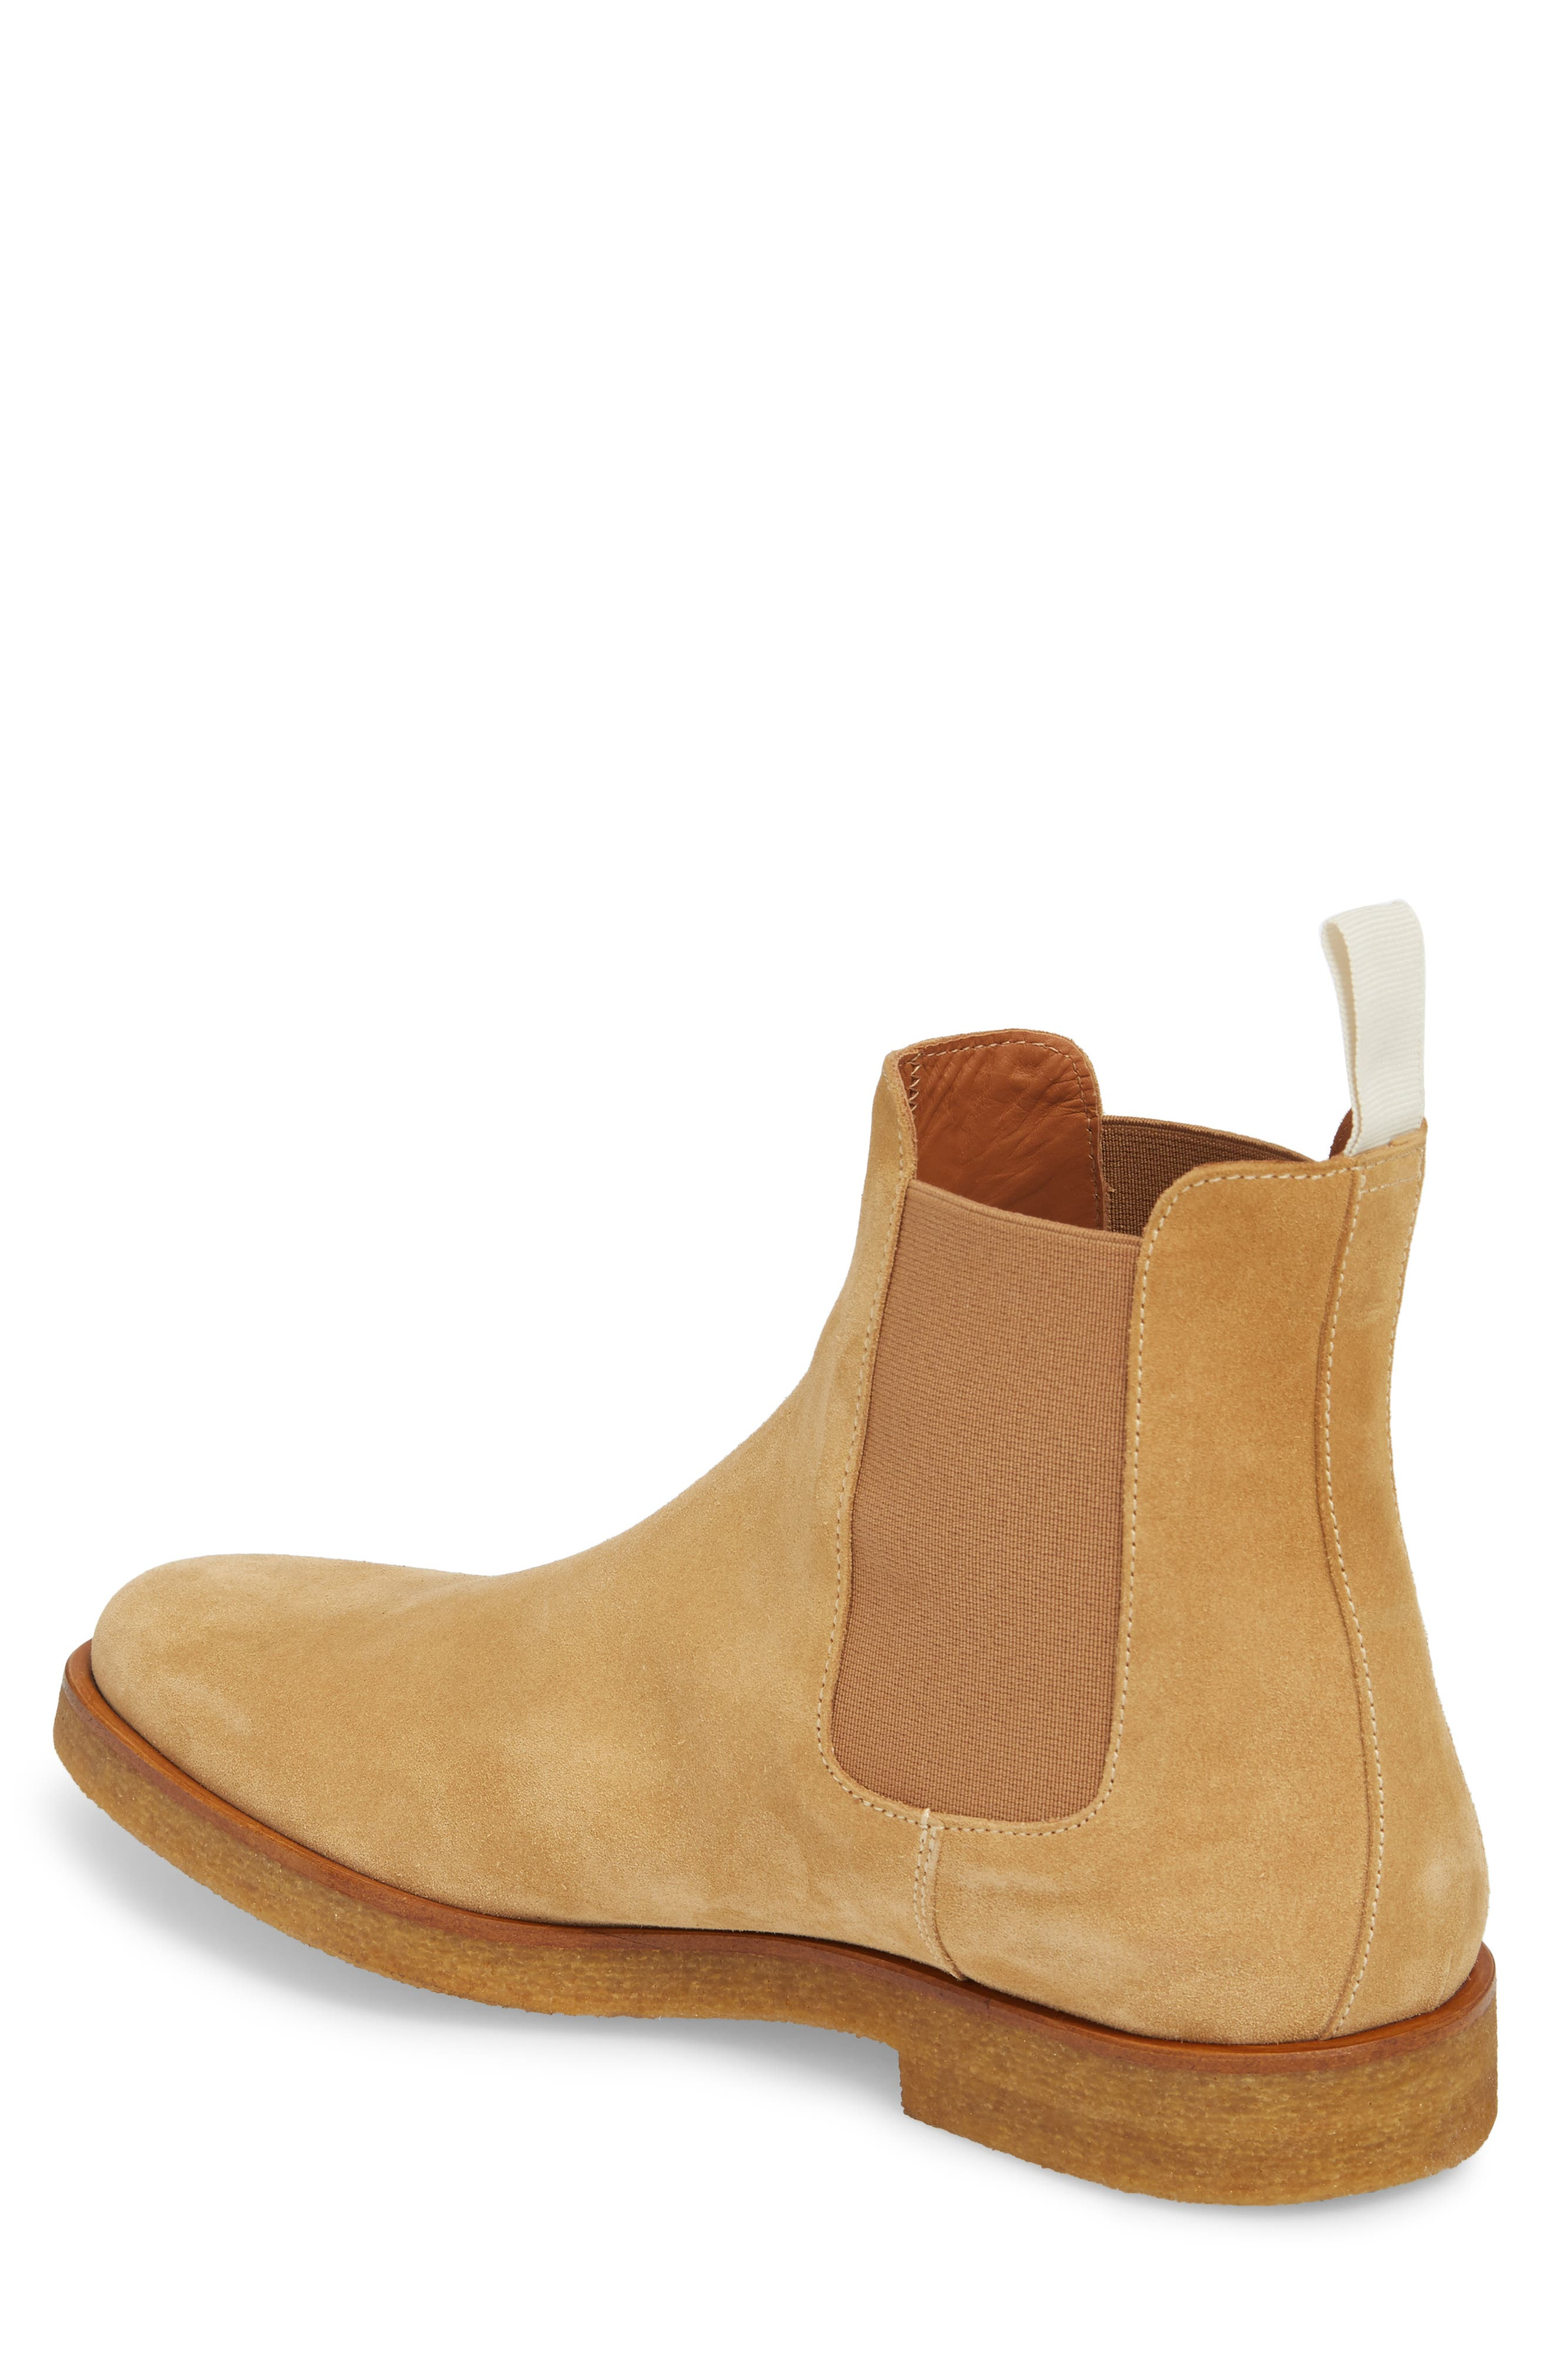 Chelsea Boot,                             Alternate thumbnail 2, color,                             AMBER SUEDE